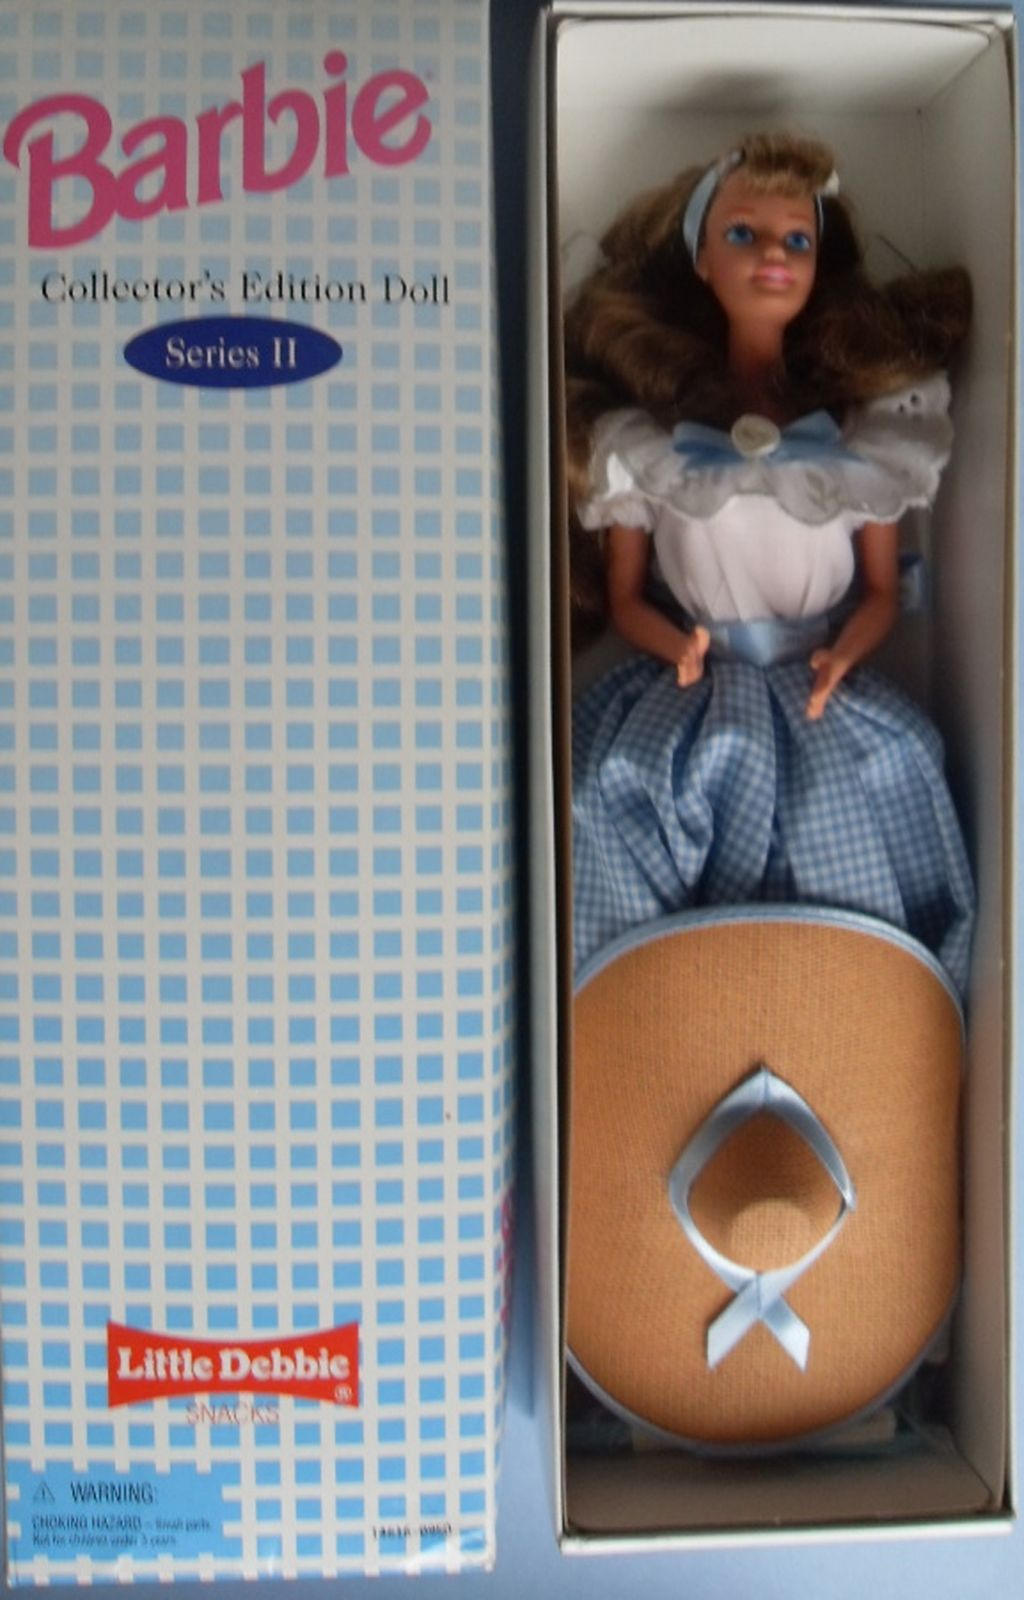 1995 SERIES II   LITTLE DEBBIE  DOLL  SECOND BARBIE COLLECTOR  Edition NRFB